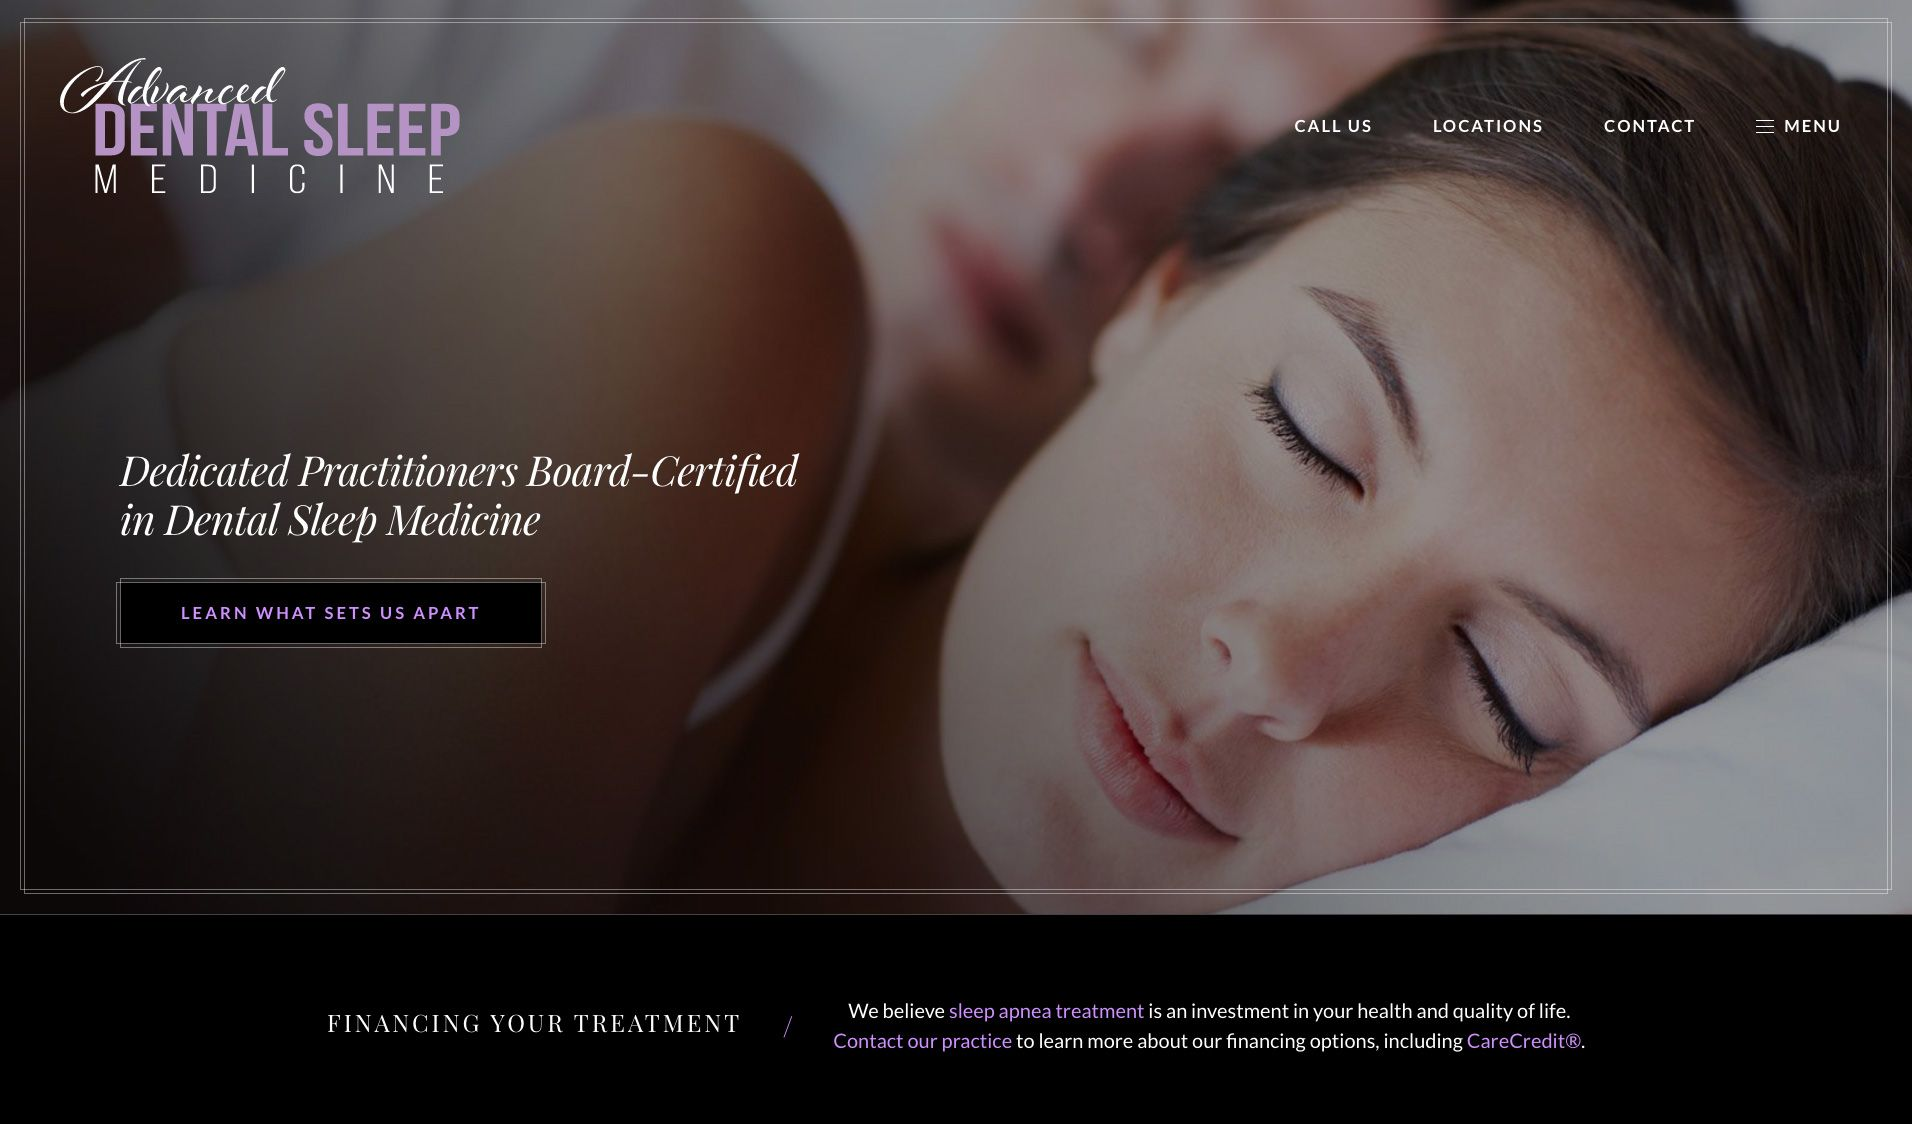 The website of Advanced Dental Sleep Medicine